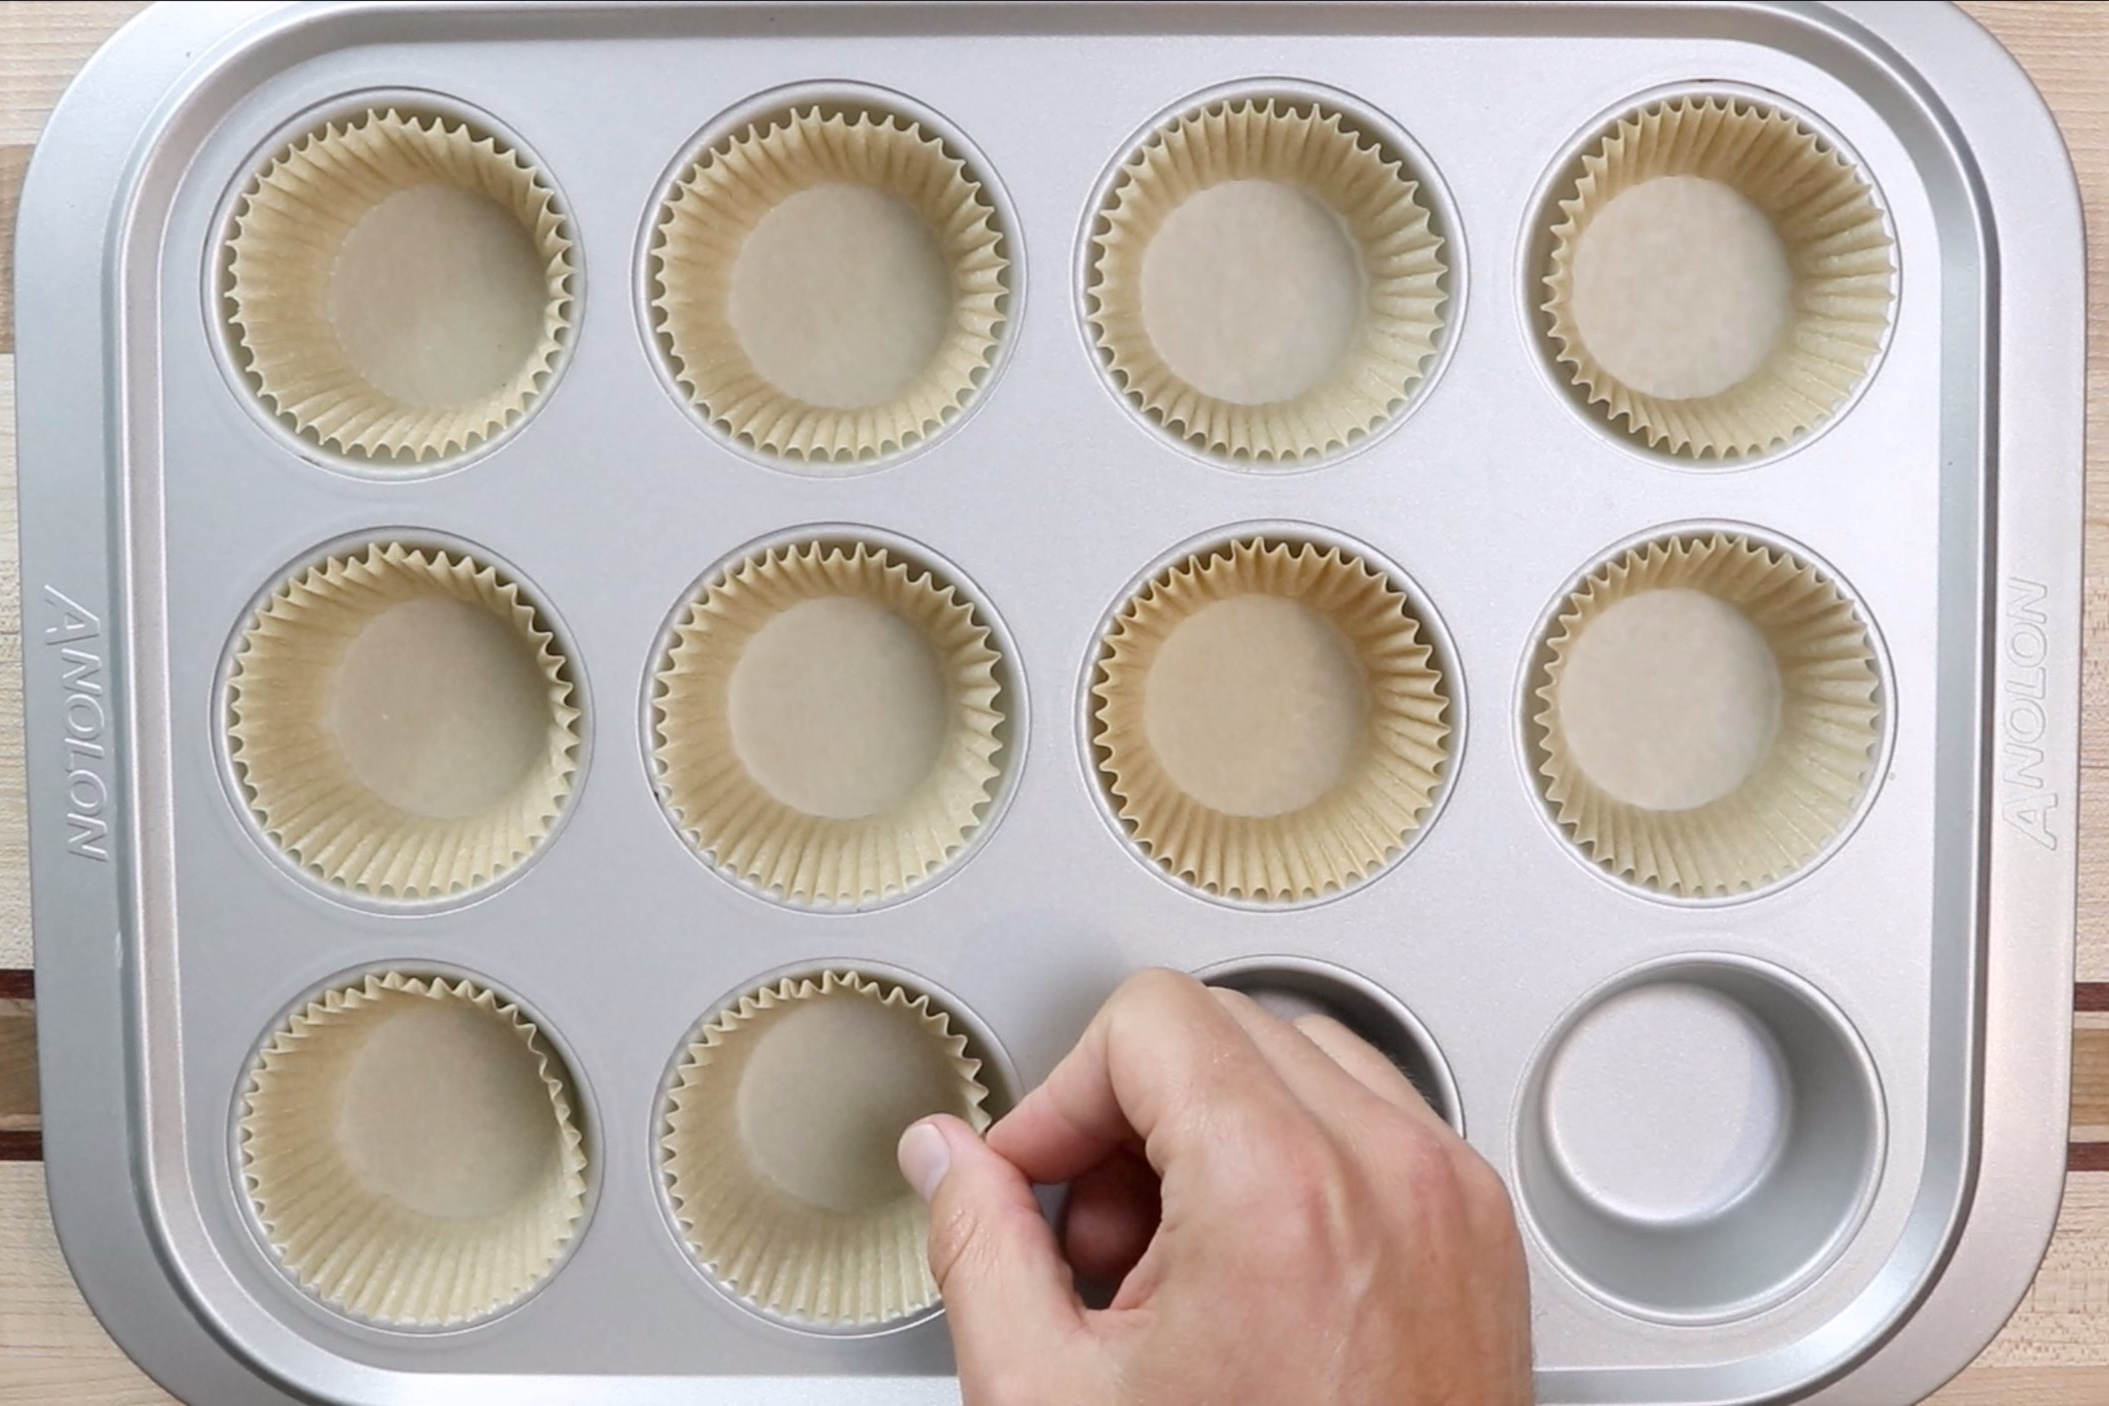 9. Line a 12-count muffin tin with baking cups. -